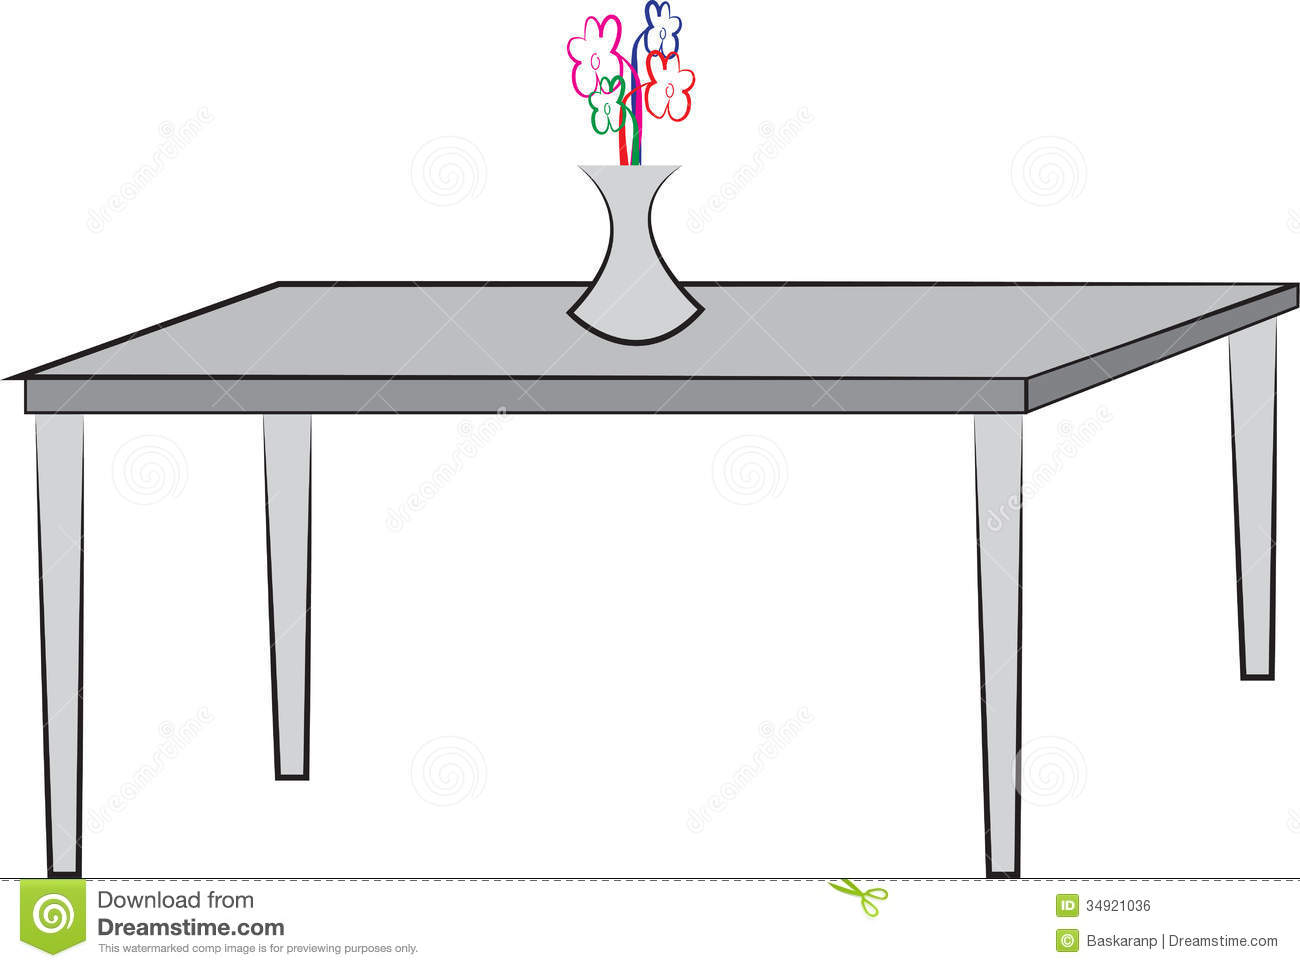 Dessin simple de table illustration de vecteur image du isolement 34921036 - Dessiner une table de jardin ...